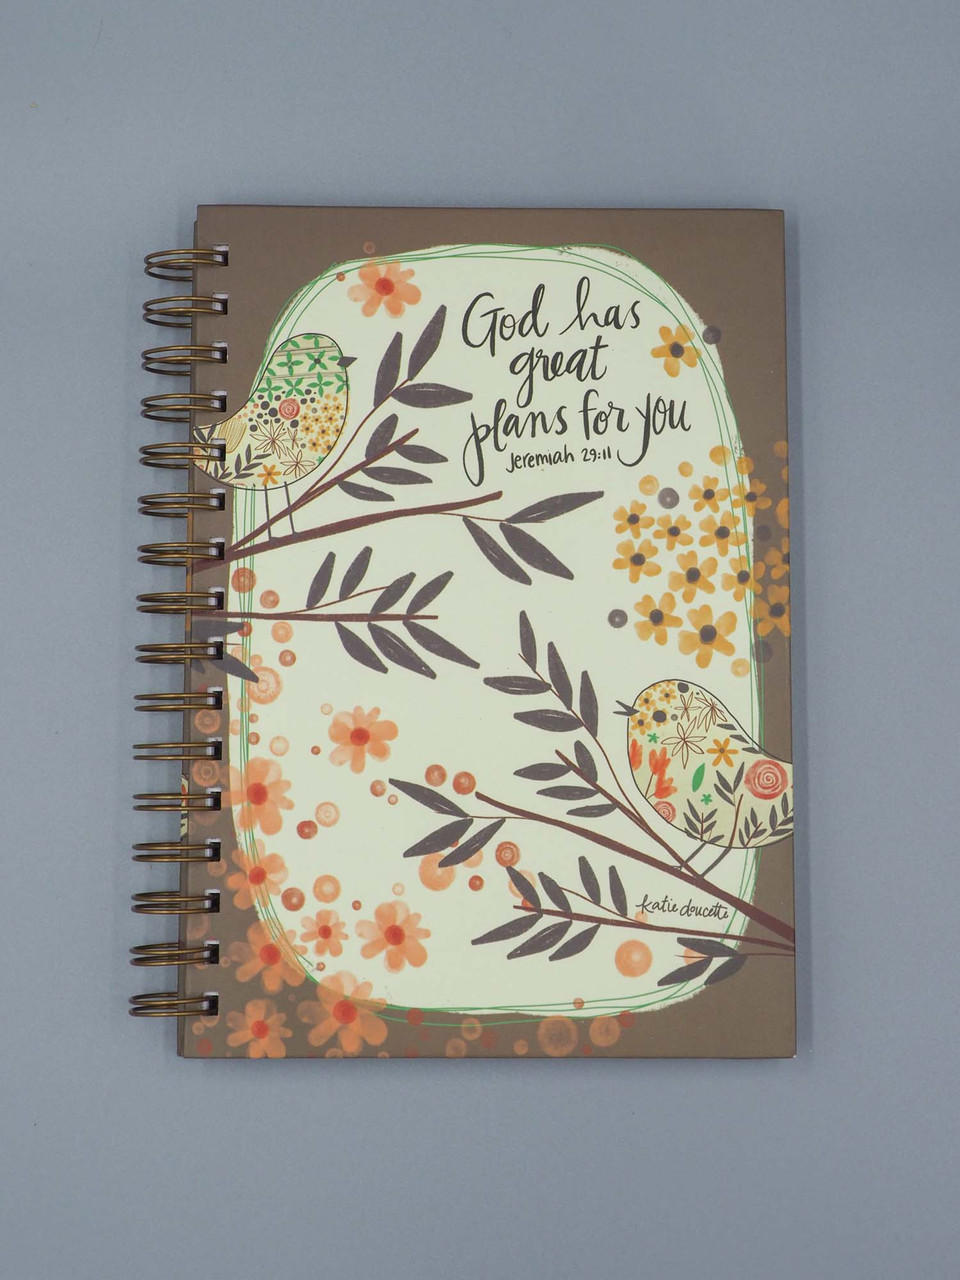 god has plans for you jeremiah 29:11 brownlow gifts